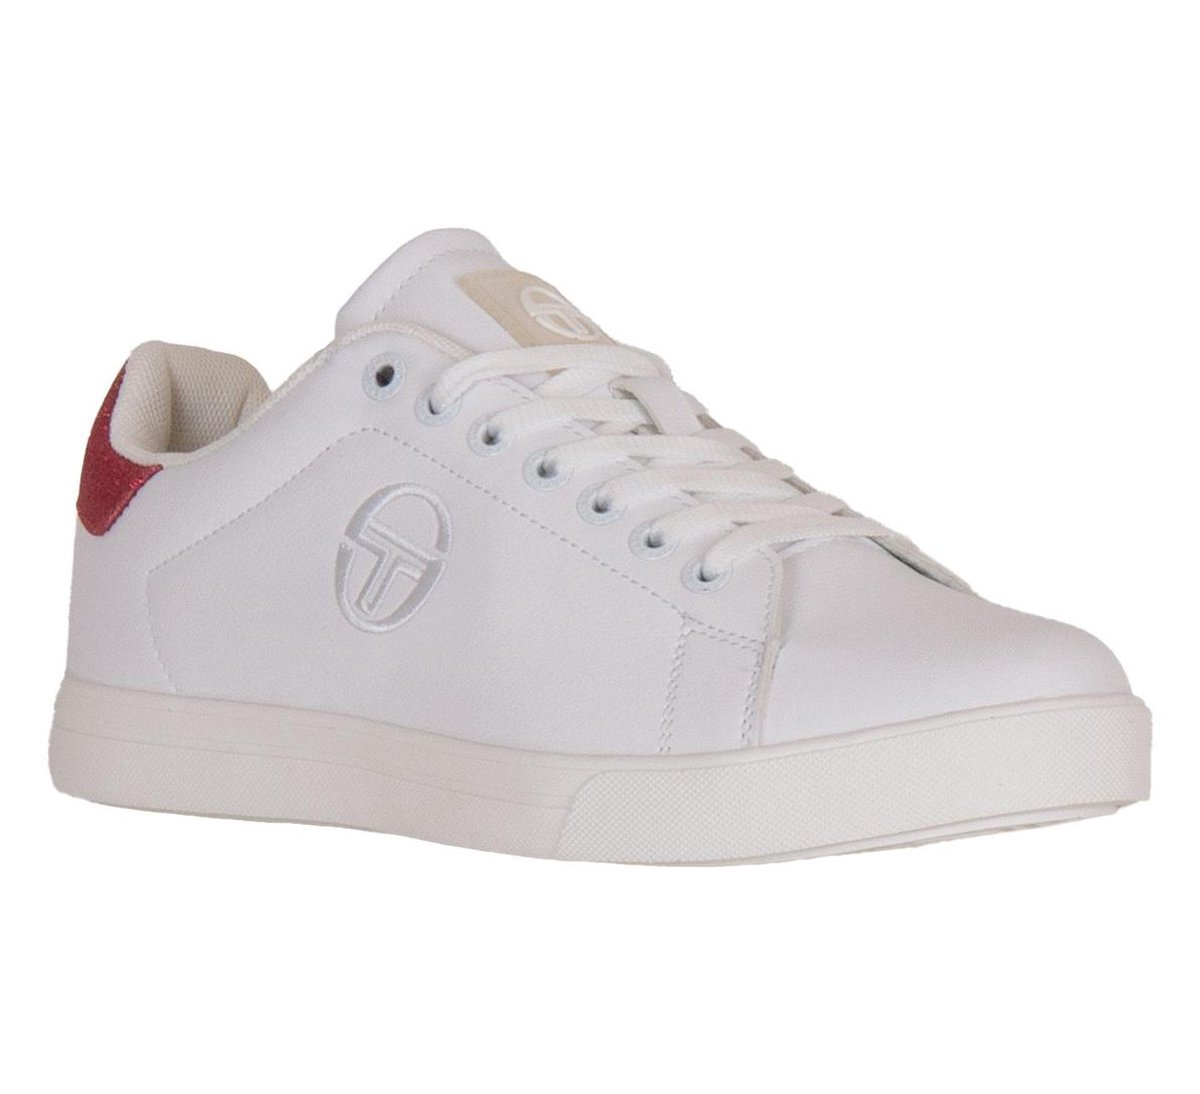 Sergio Tacchini Sneakers - Maat 40 - Vrouwen - wit/roze (glinsterend) qa6nr